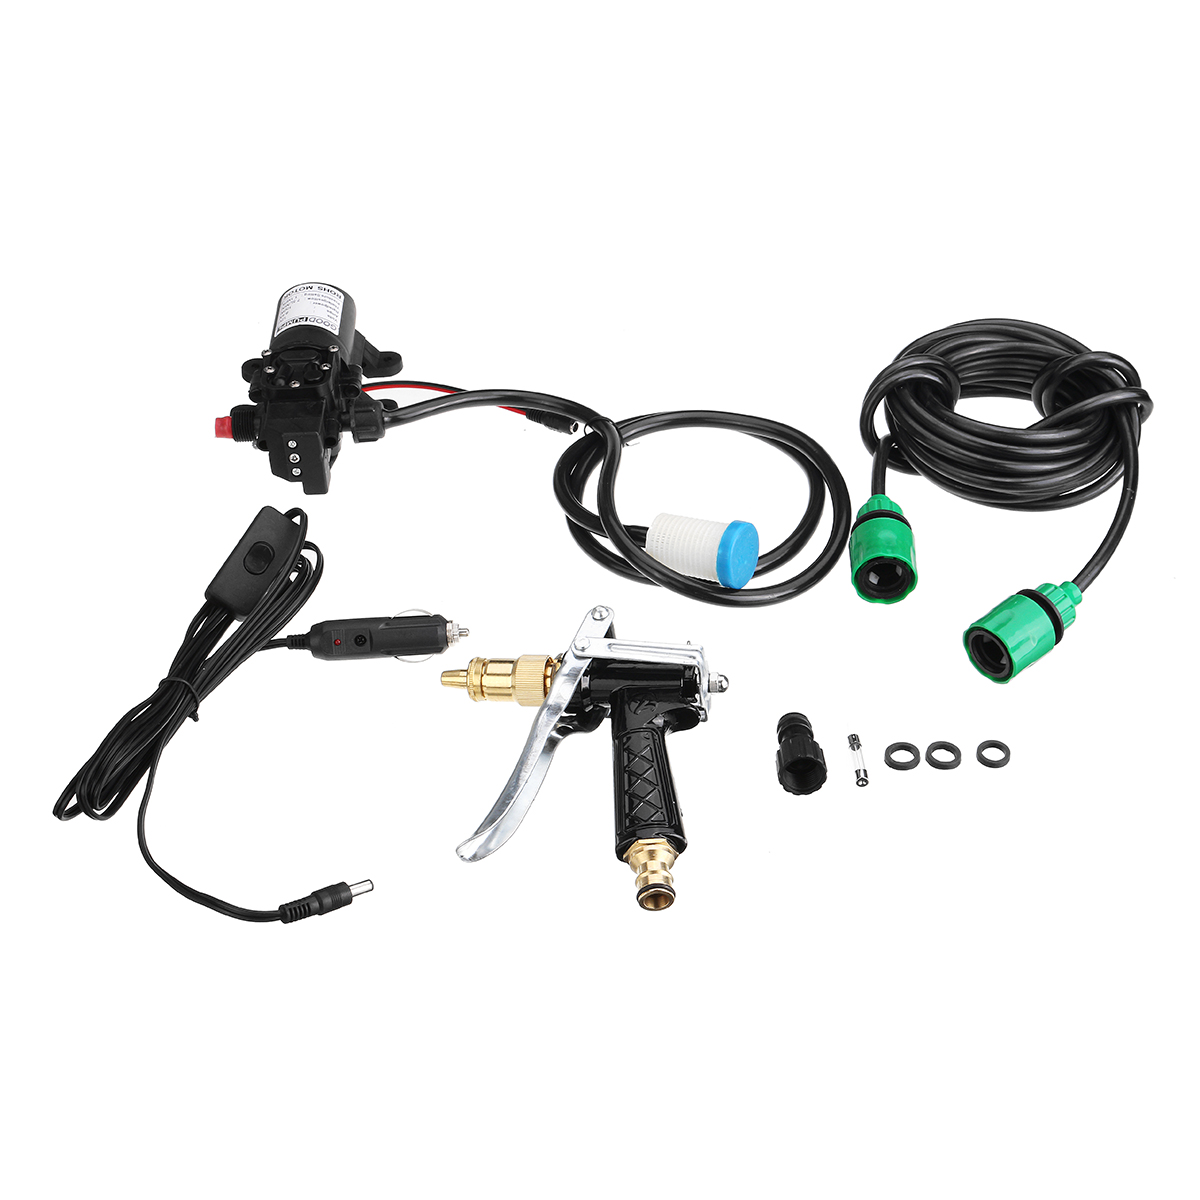 100W 12V High Pressure Car Electric Washer Squirt Sprayer Self-priming Pump Clean Kit